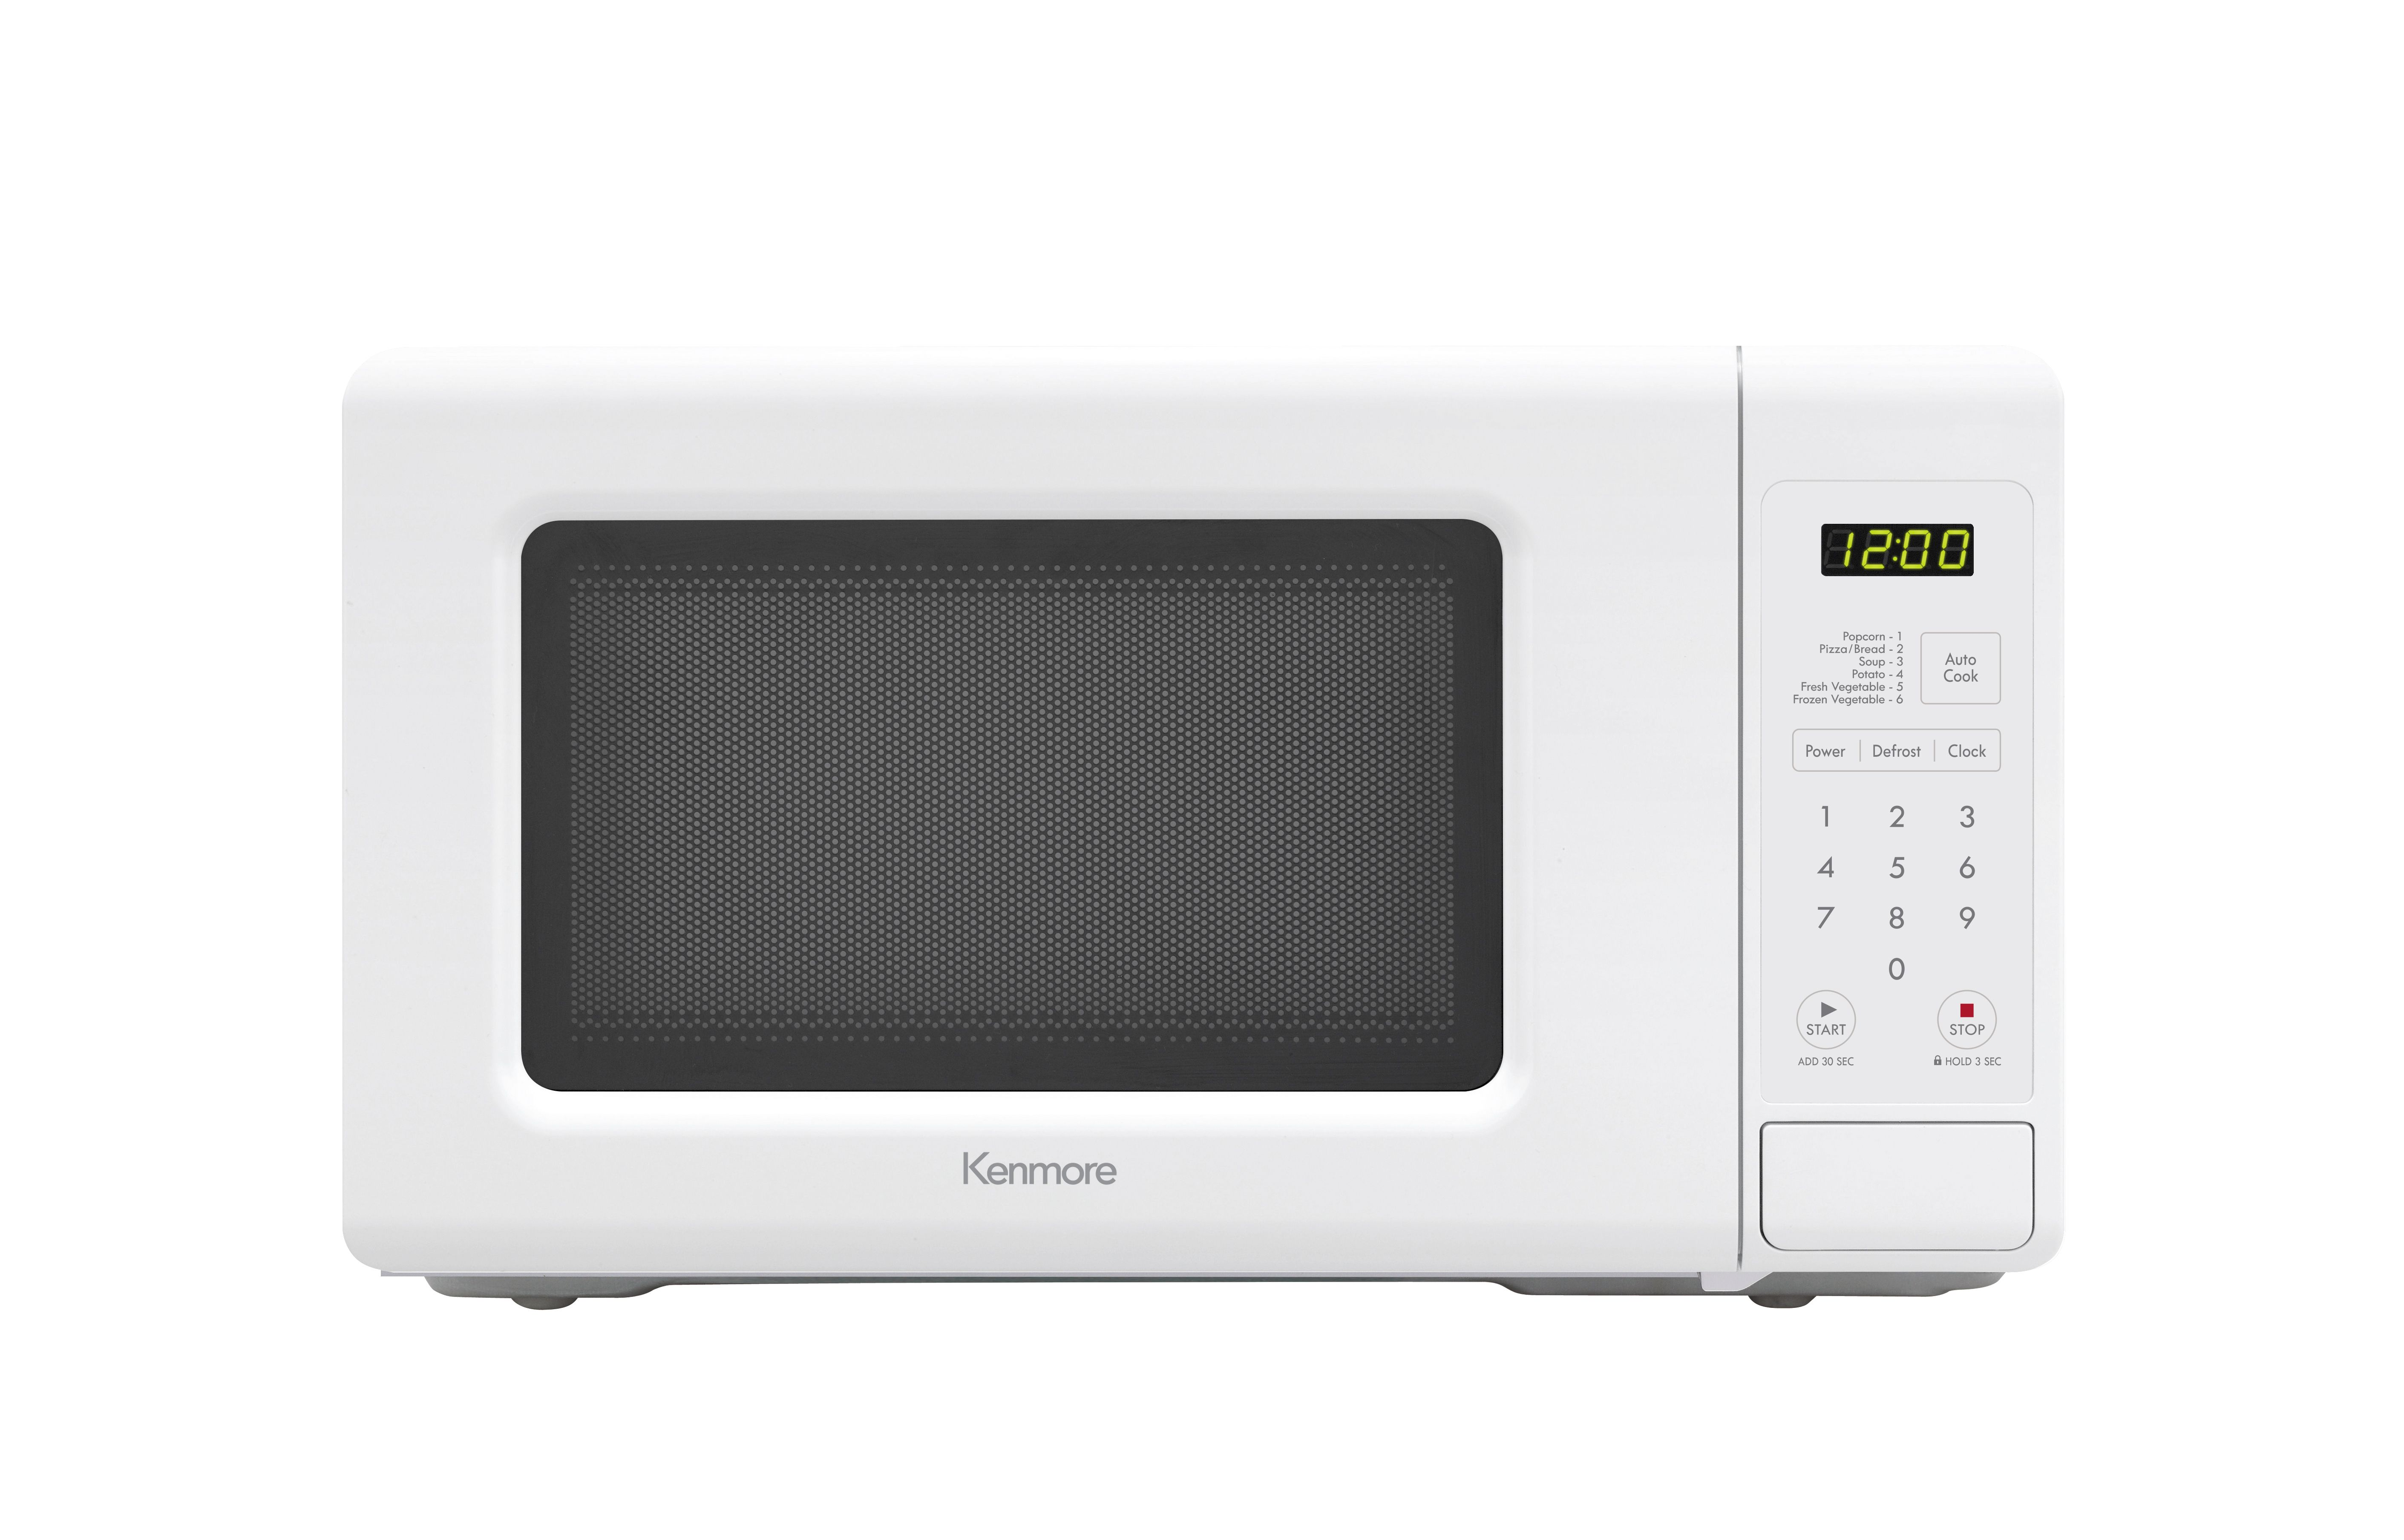 Kenmore 70712 0 7 Cu Ft Countertop Microwave Oven White Black